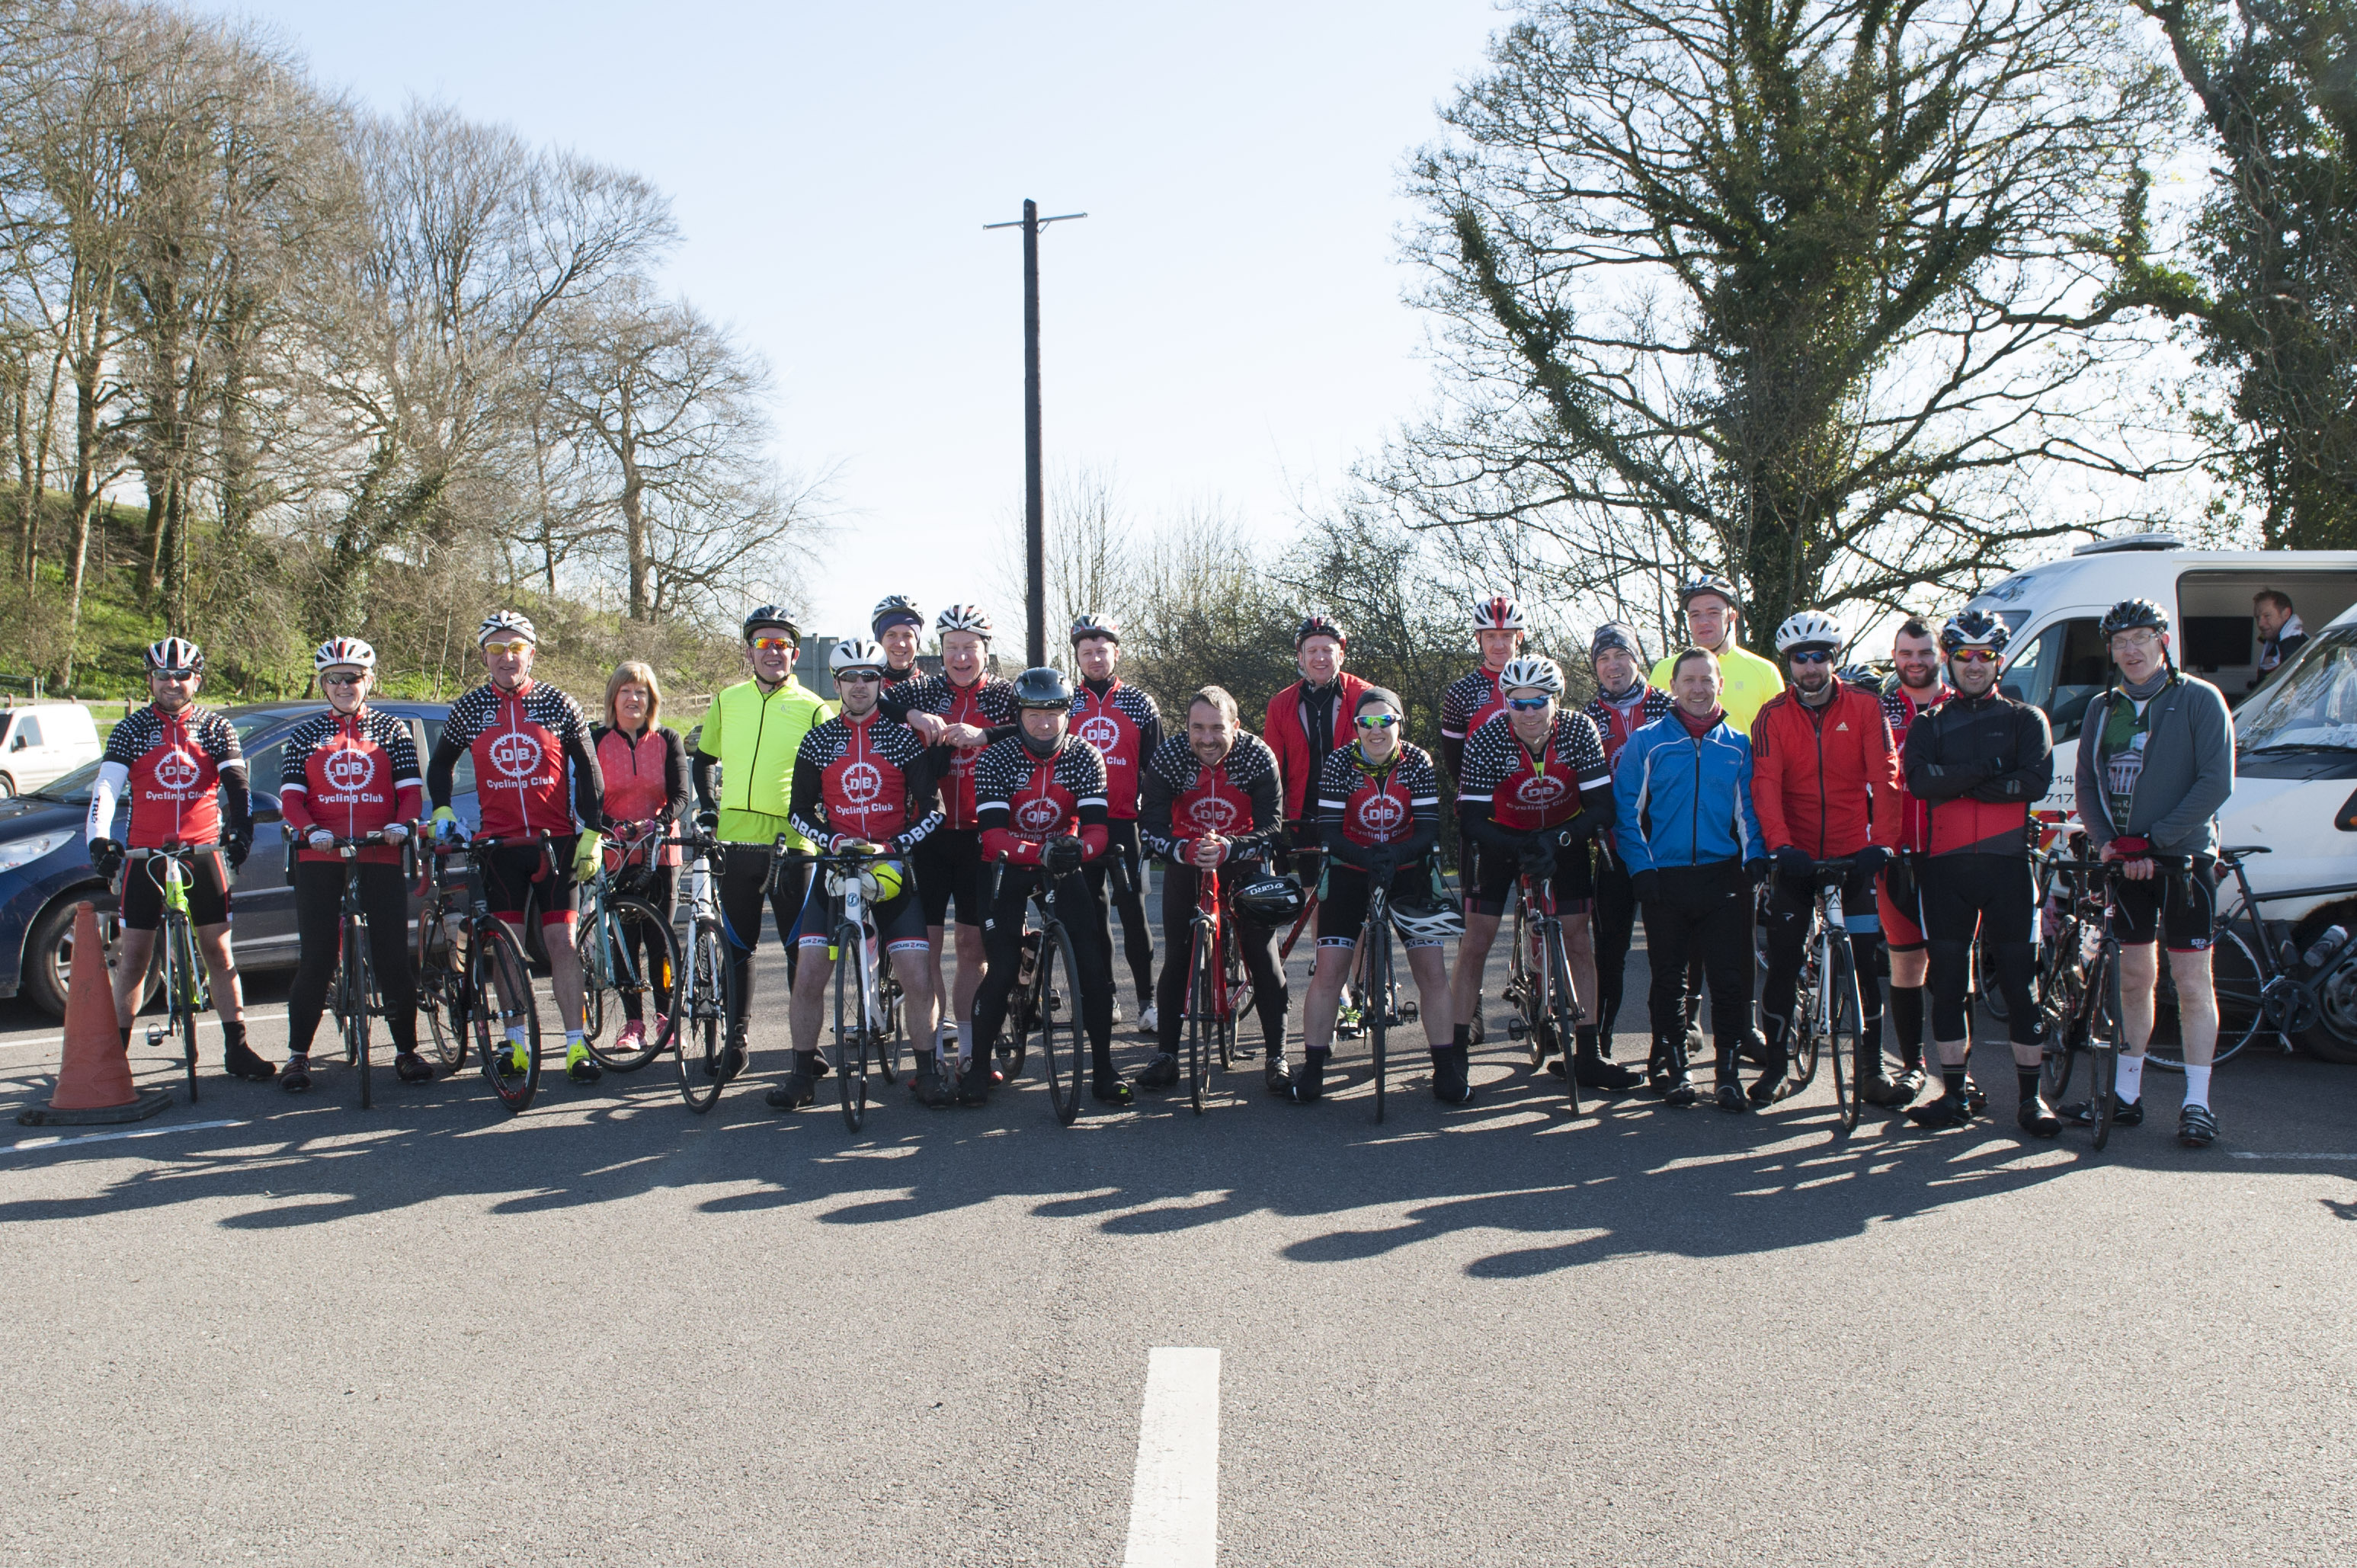 Some of the group from DB Cycling Club, who took part in the cycle in aid of Scoil Mhuire, Gransha. ©Rory Geary/The Northern Standard